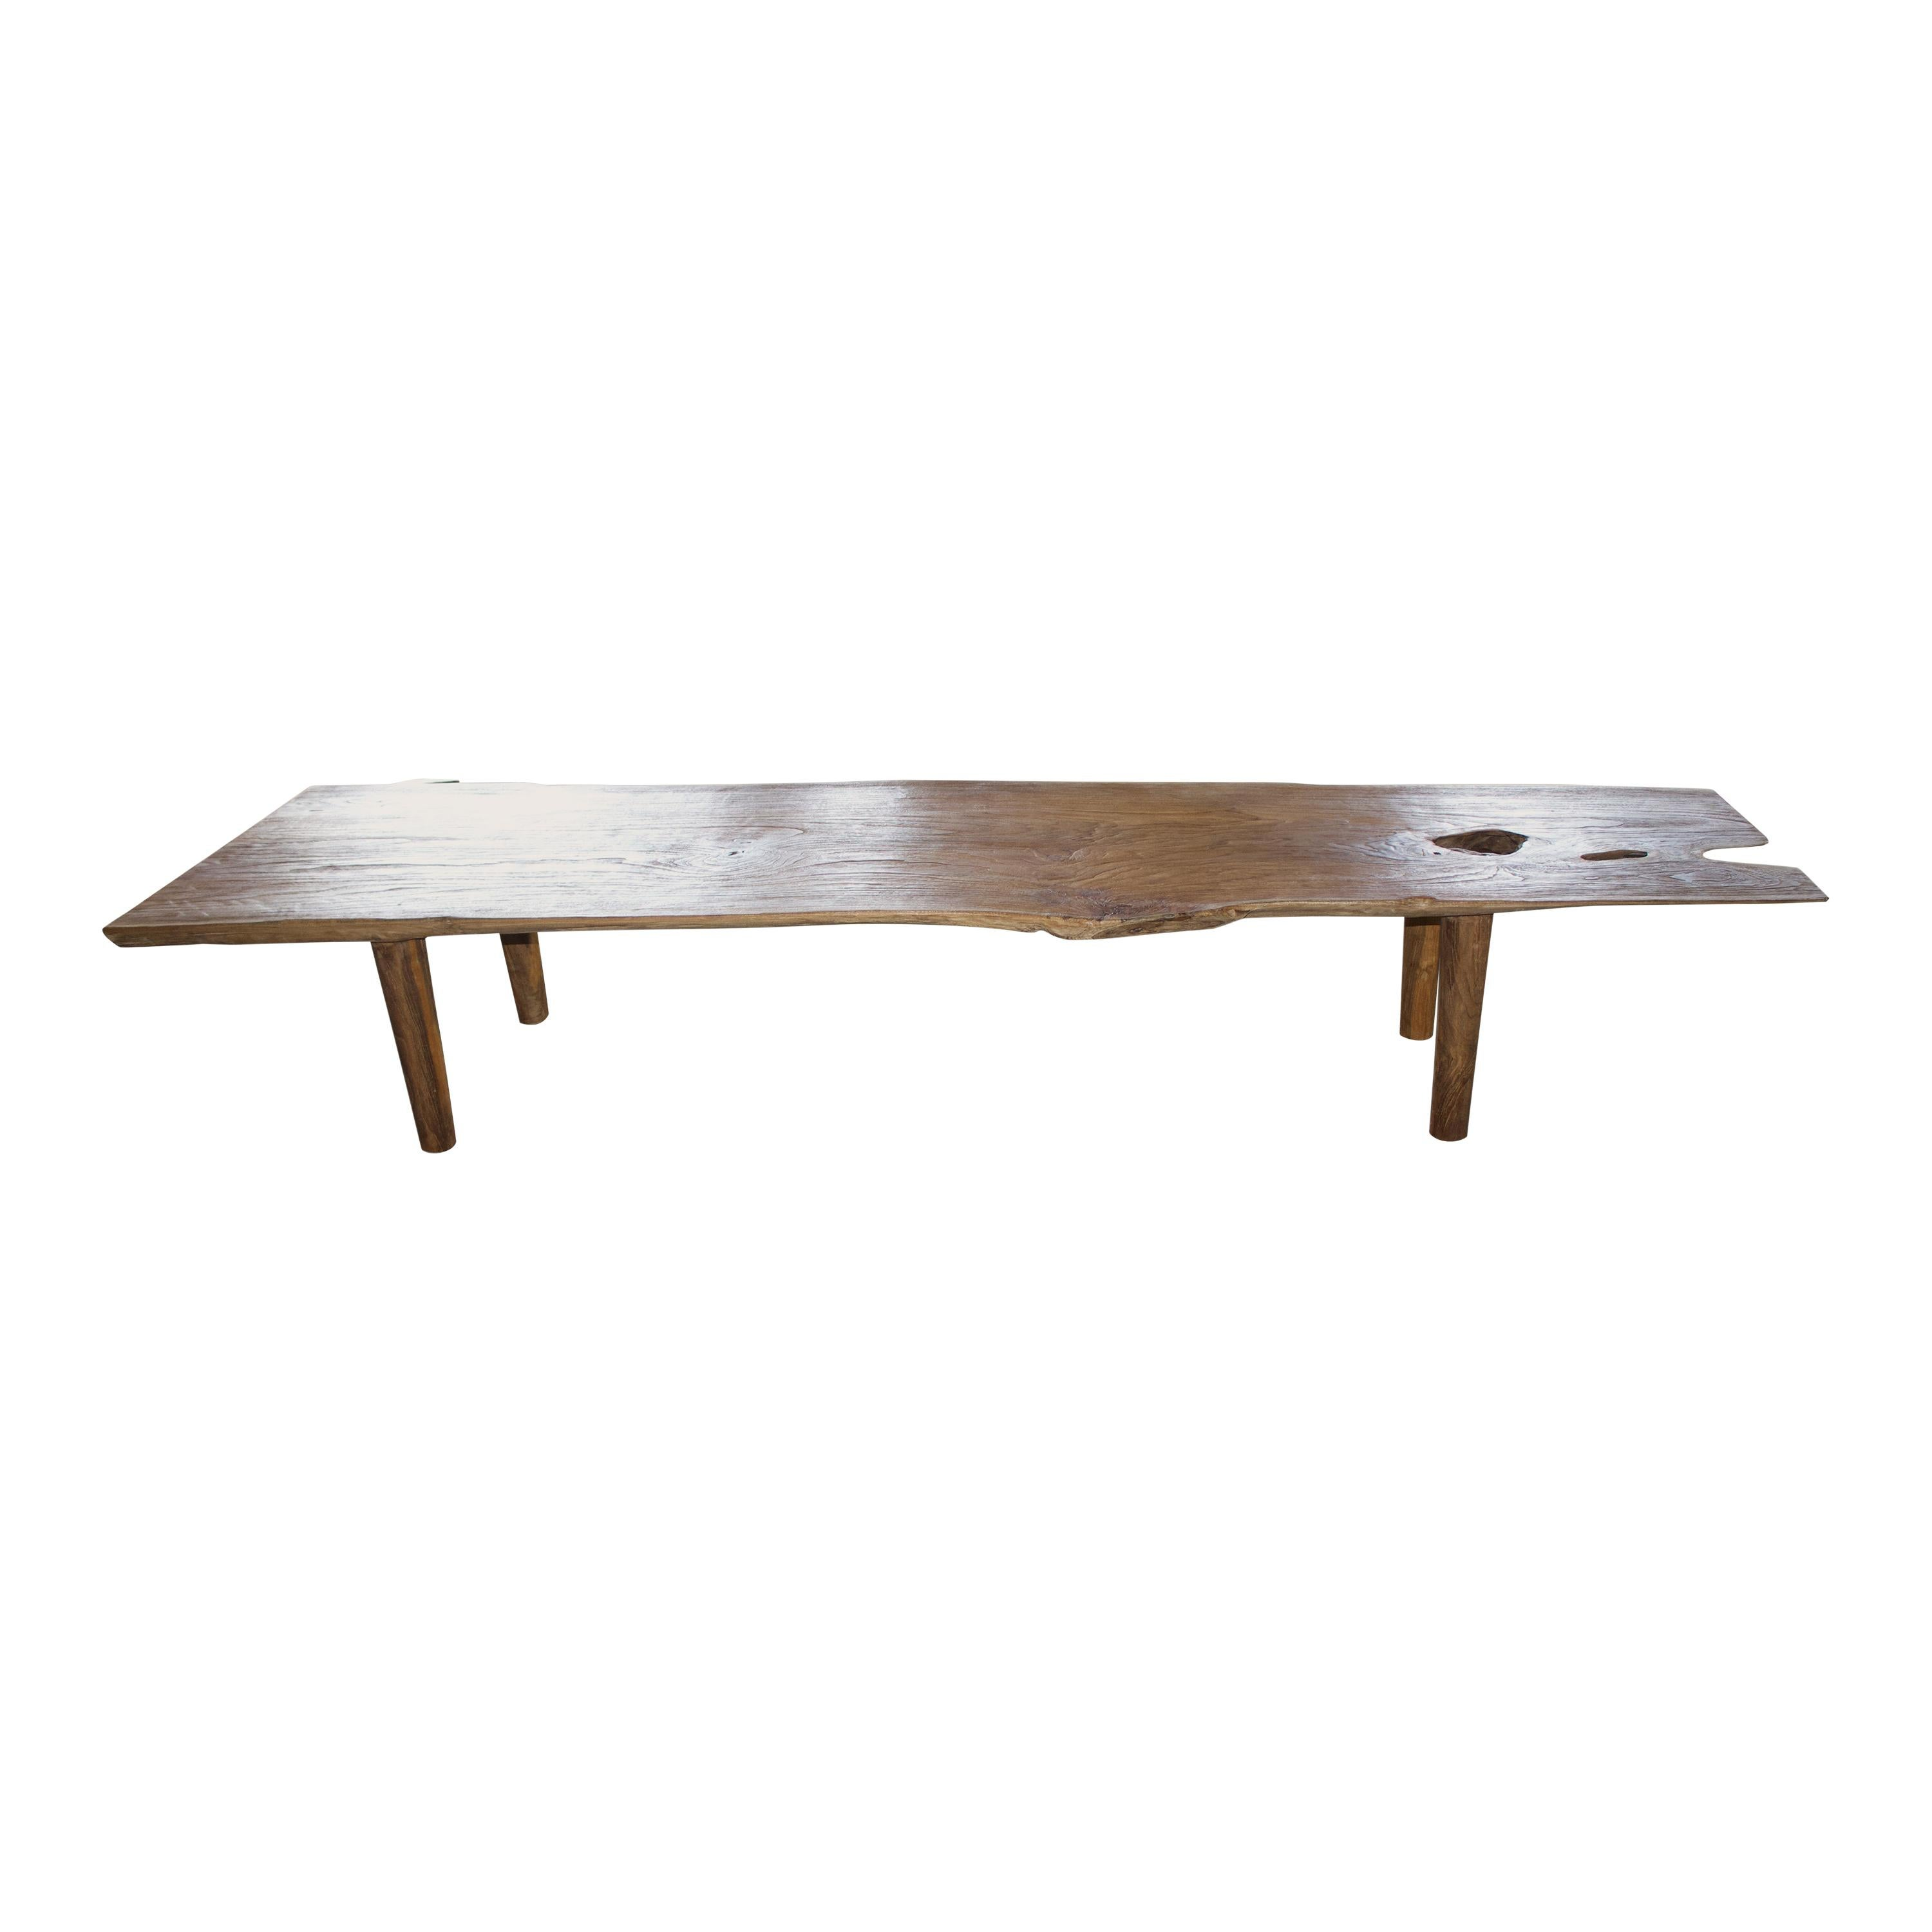 Andrianna Shamaris Live Edge Teak Wood Coffee Table or Bench